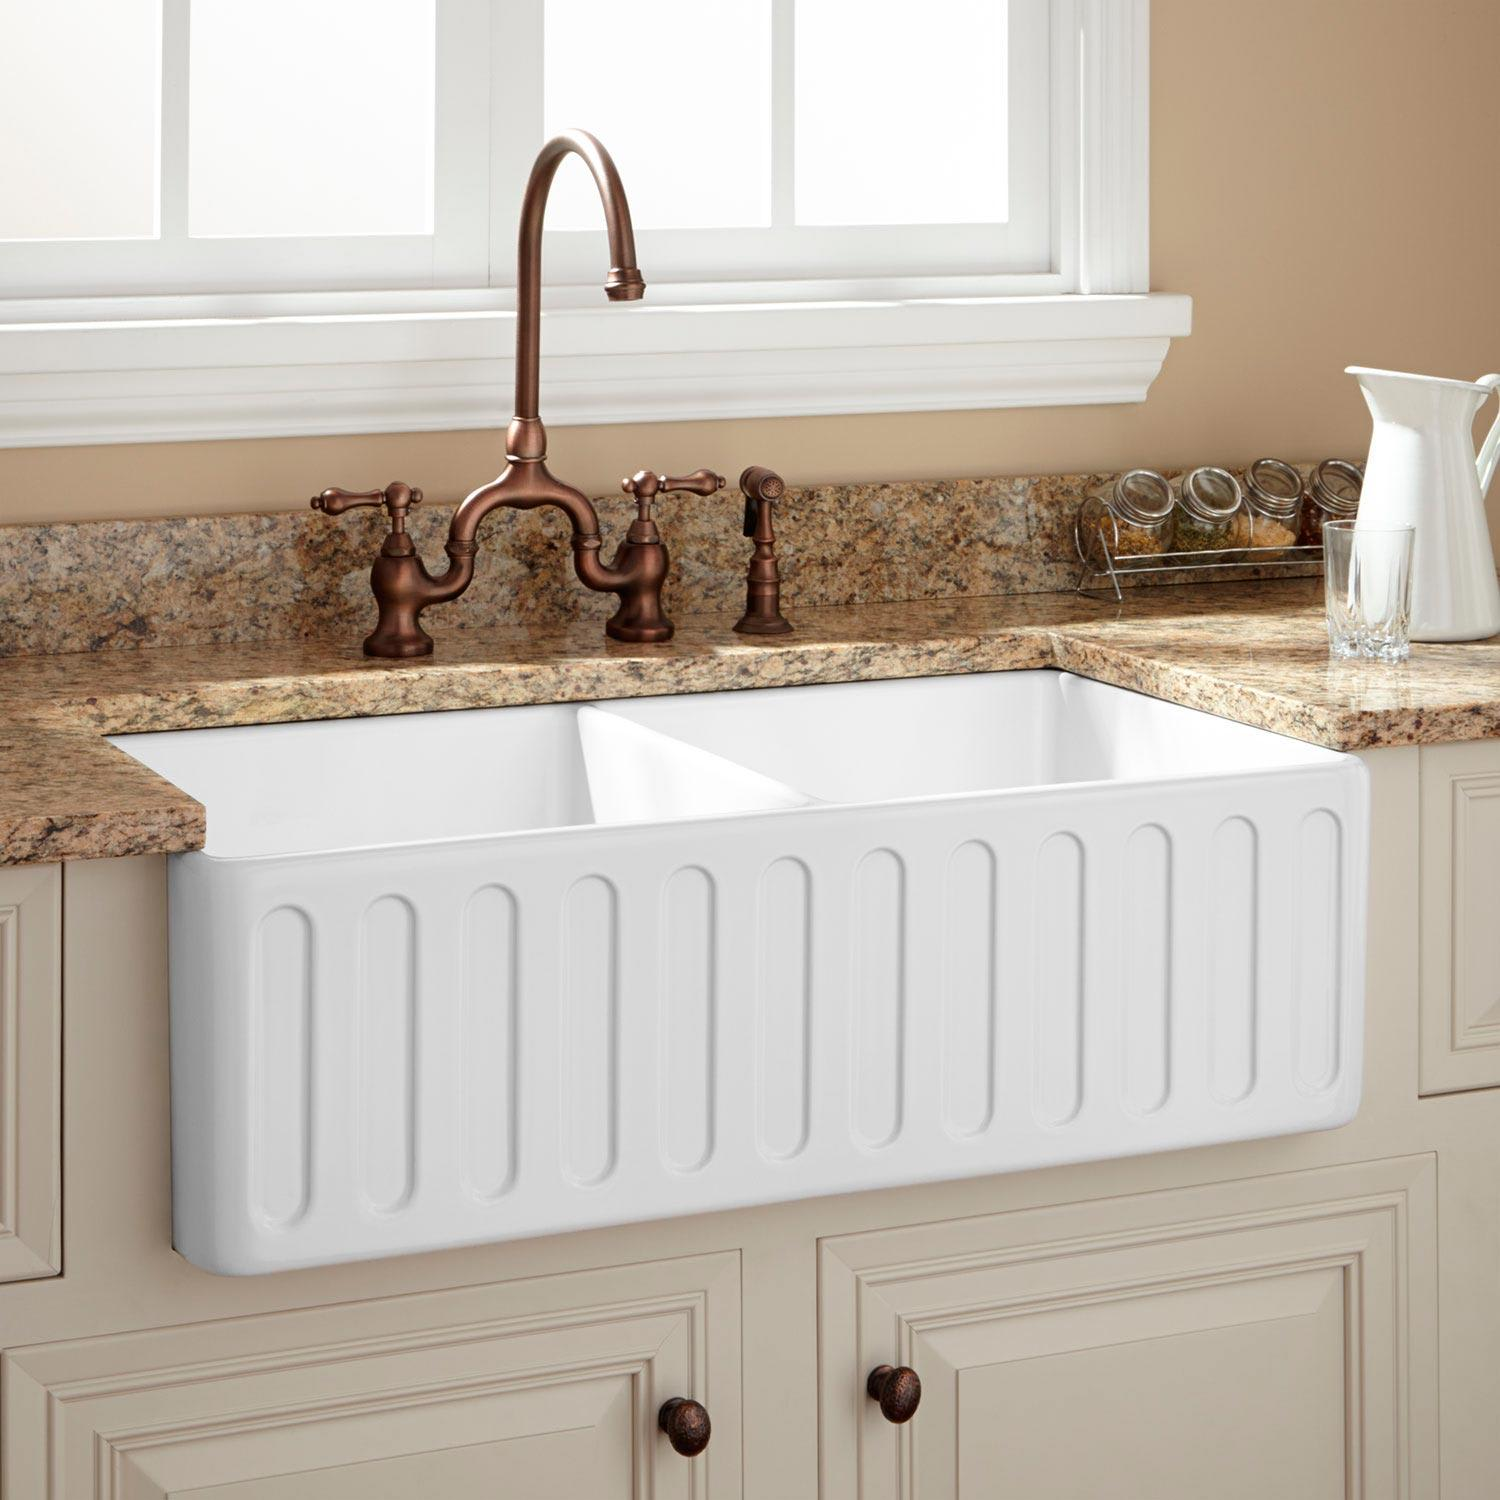 Farmhouse Sink.Signature Hardware 400558 White Northing 33 Double Basin Fireclay